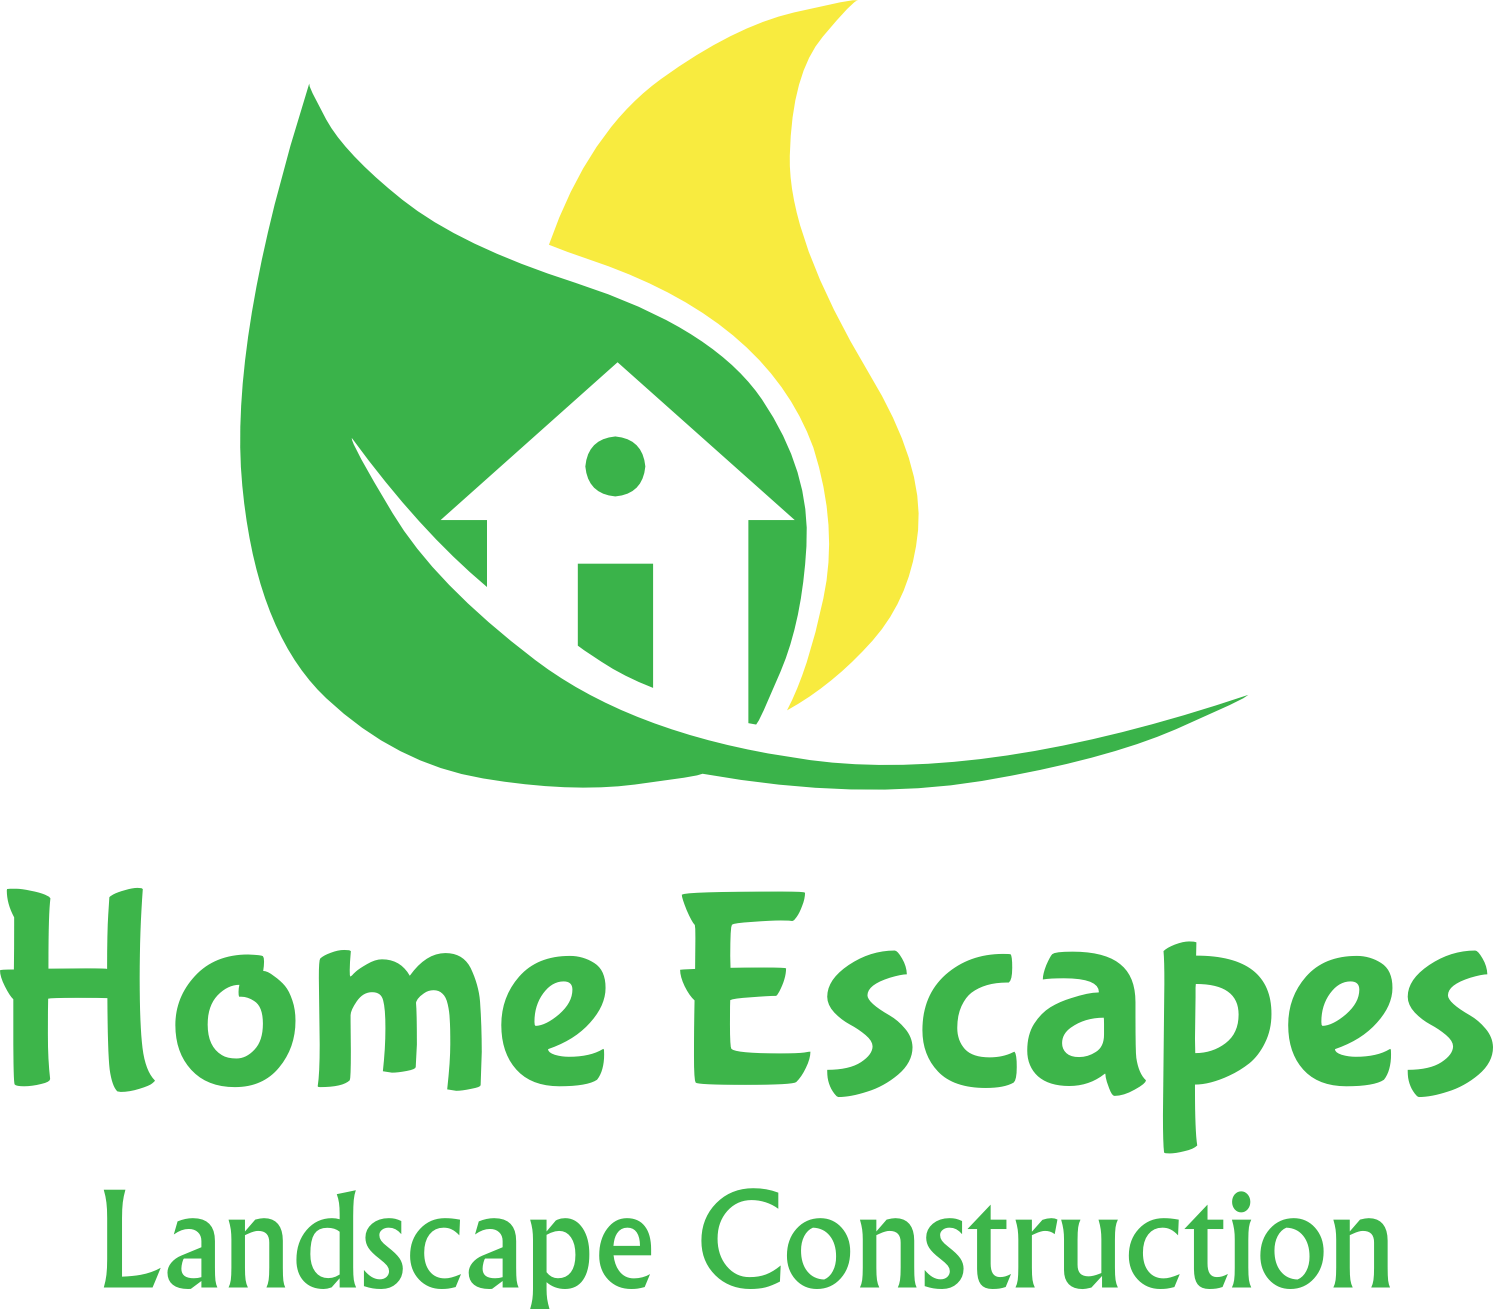 Home Escapes